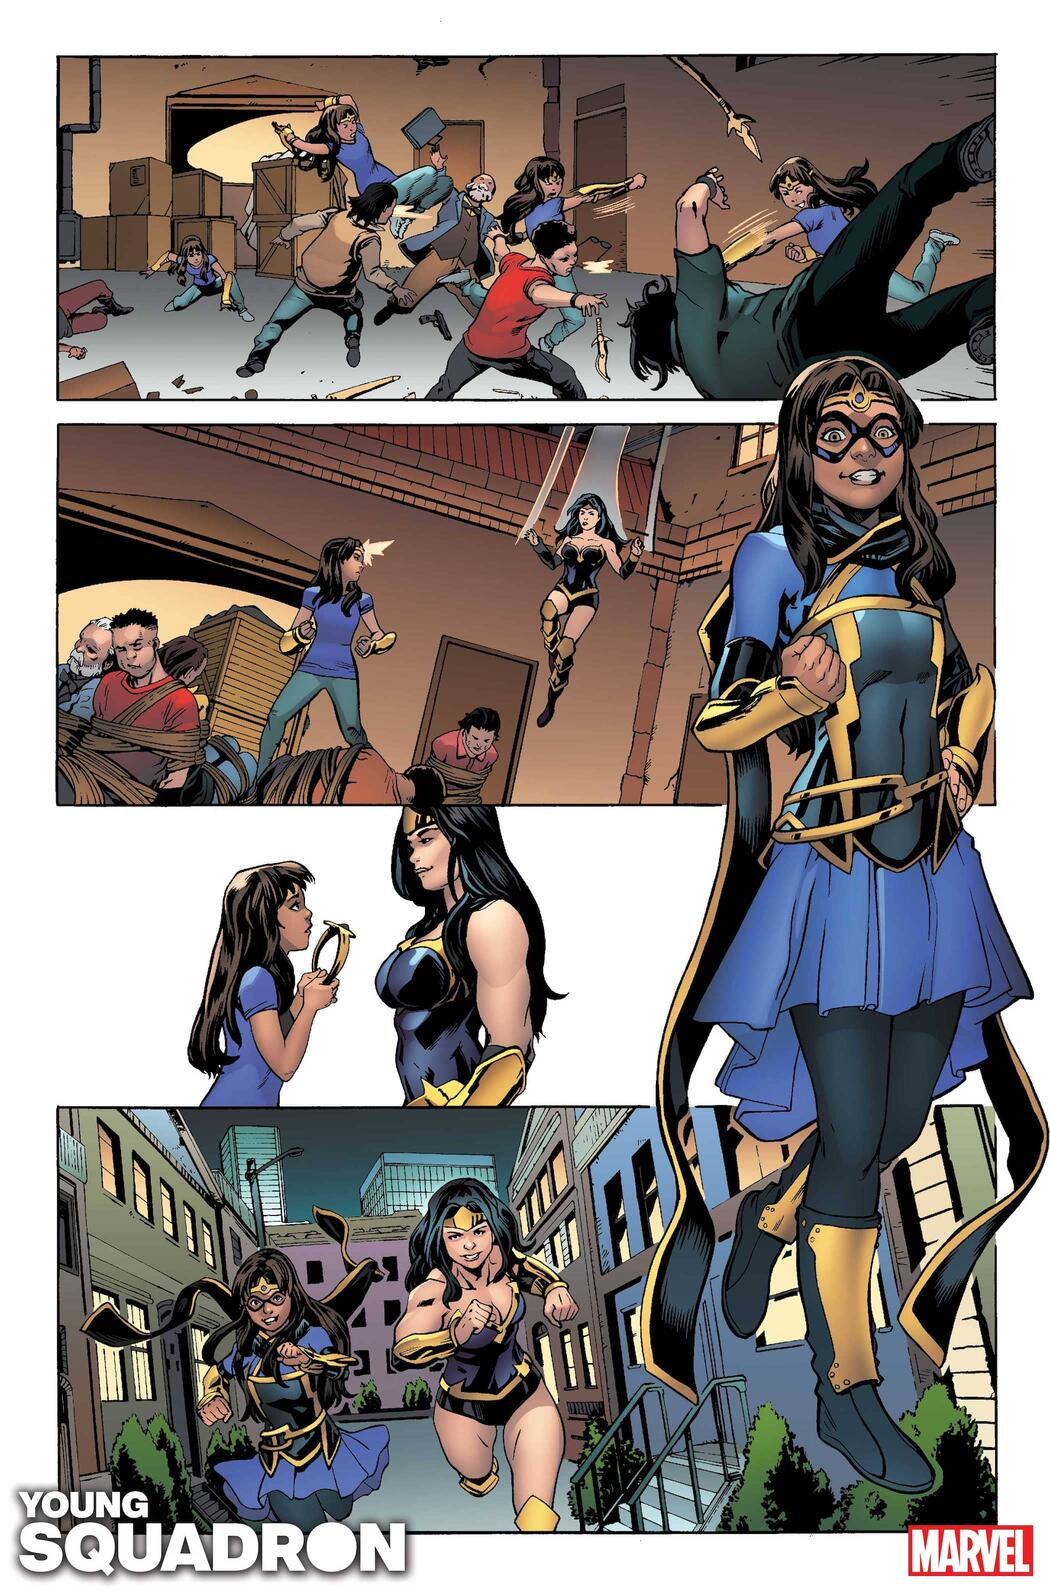 HEROES REBORN: YOUNG SQUADRON #1 preview art by Steven Cummings with colors by Erick Arciniega